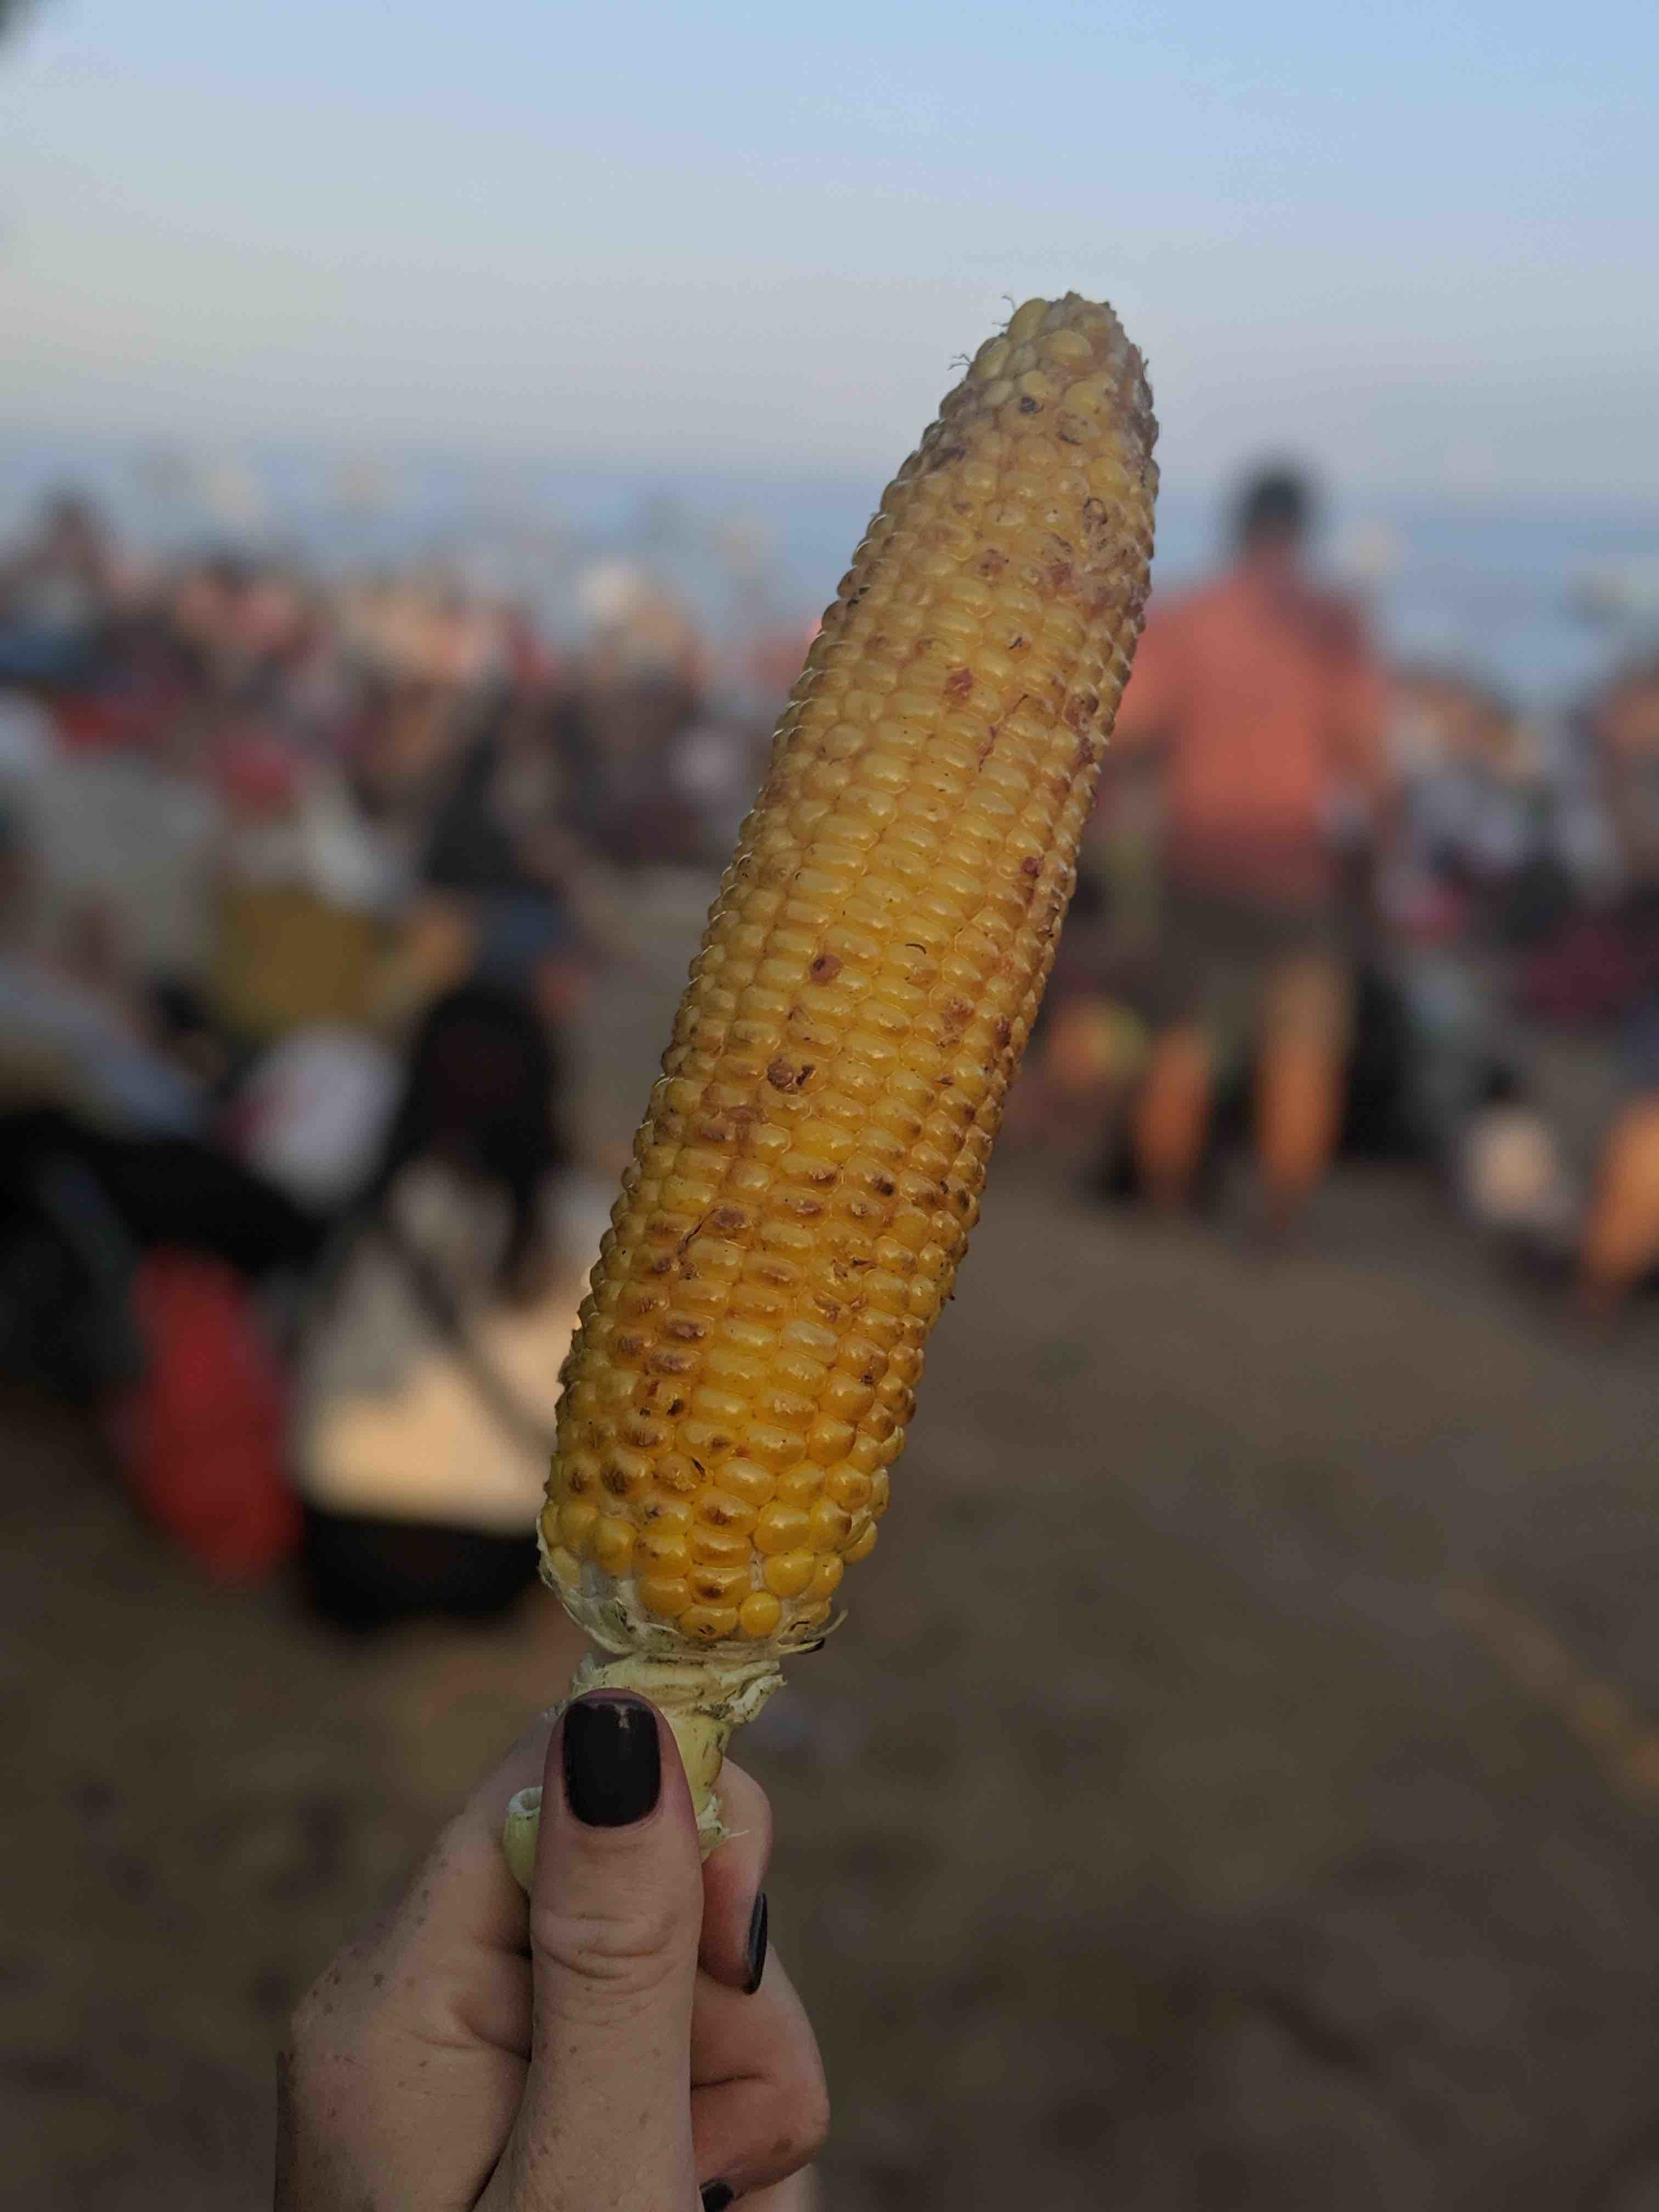 Cart corn at mystery festival we stumbled upon